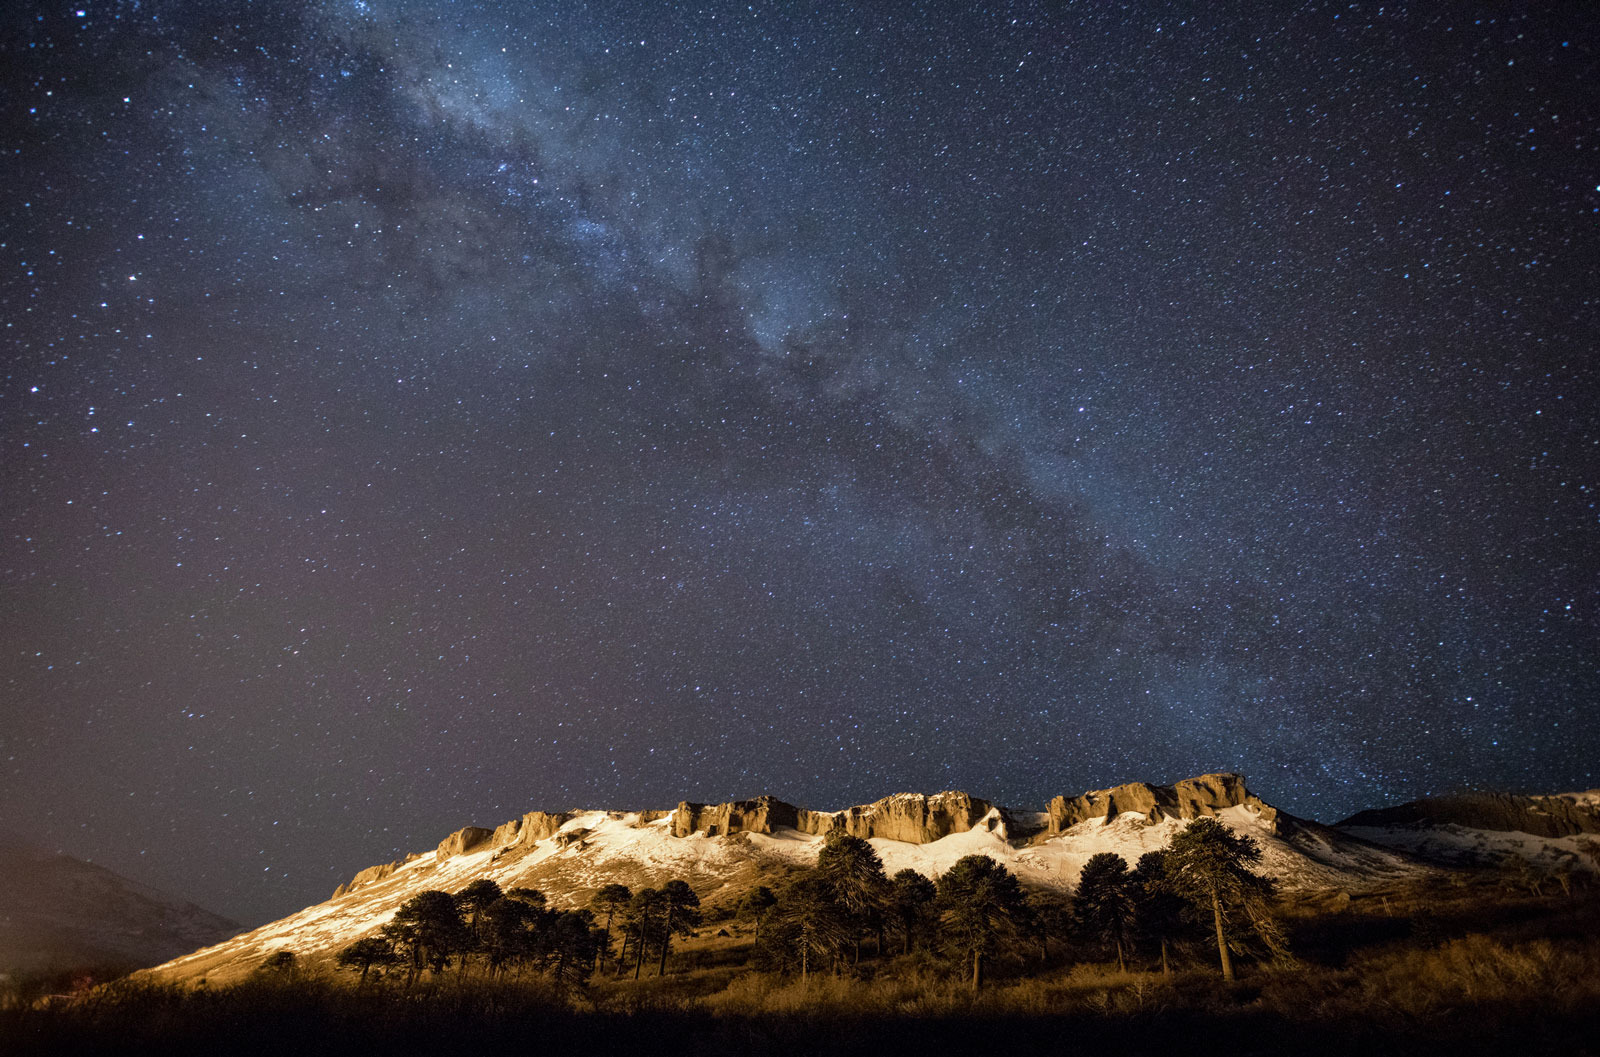 The Milky Way above some really cool terrain that we did not ride. Photo Courtesy: Ben Girardi - Adventure in Argentina